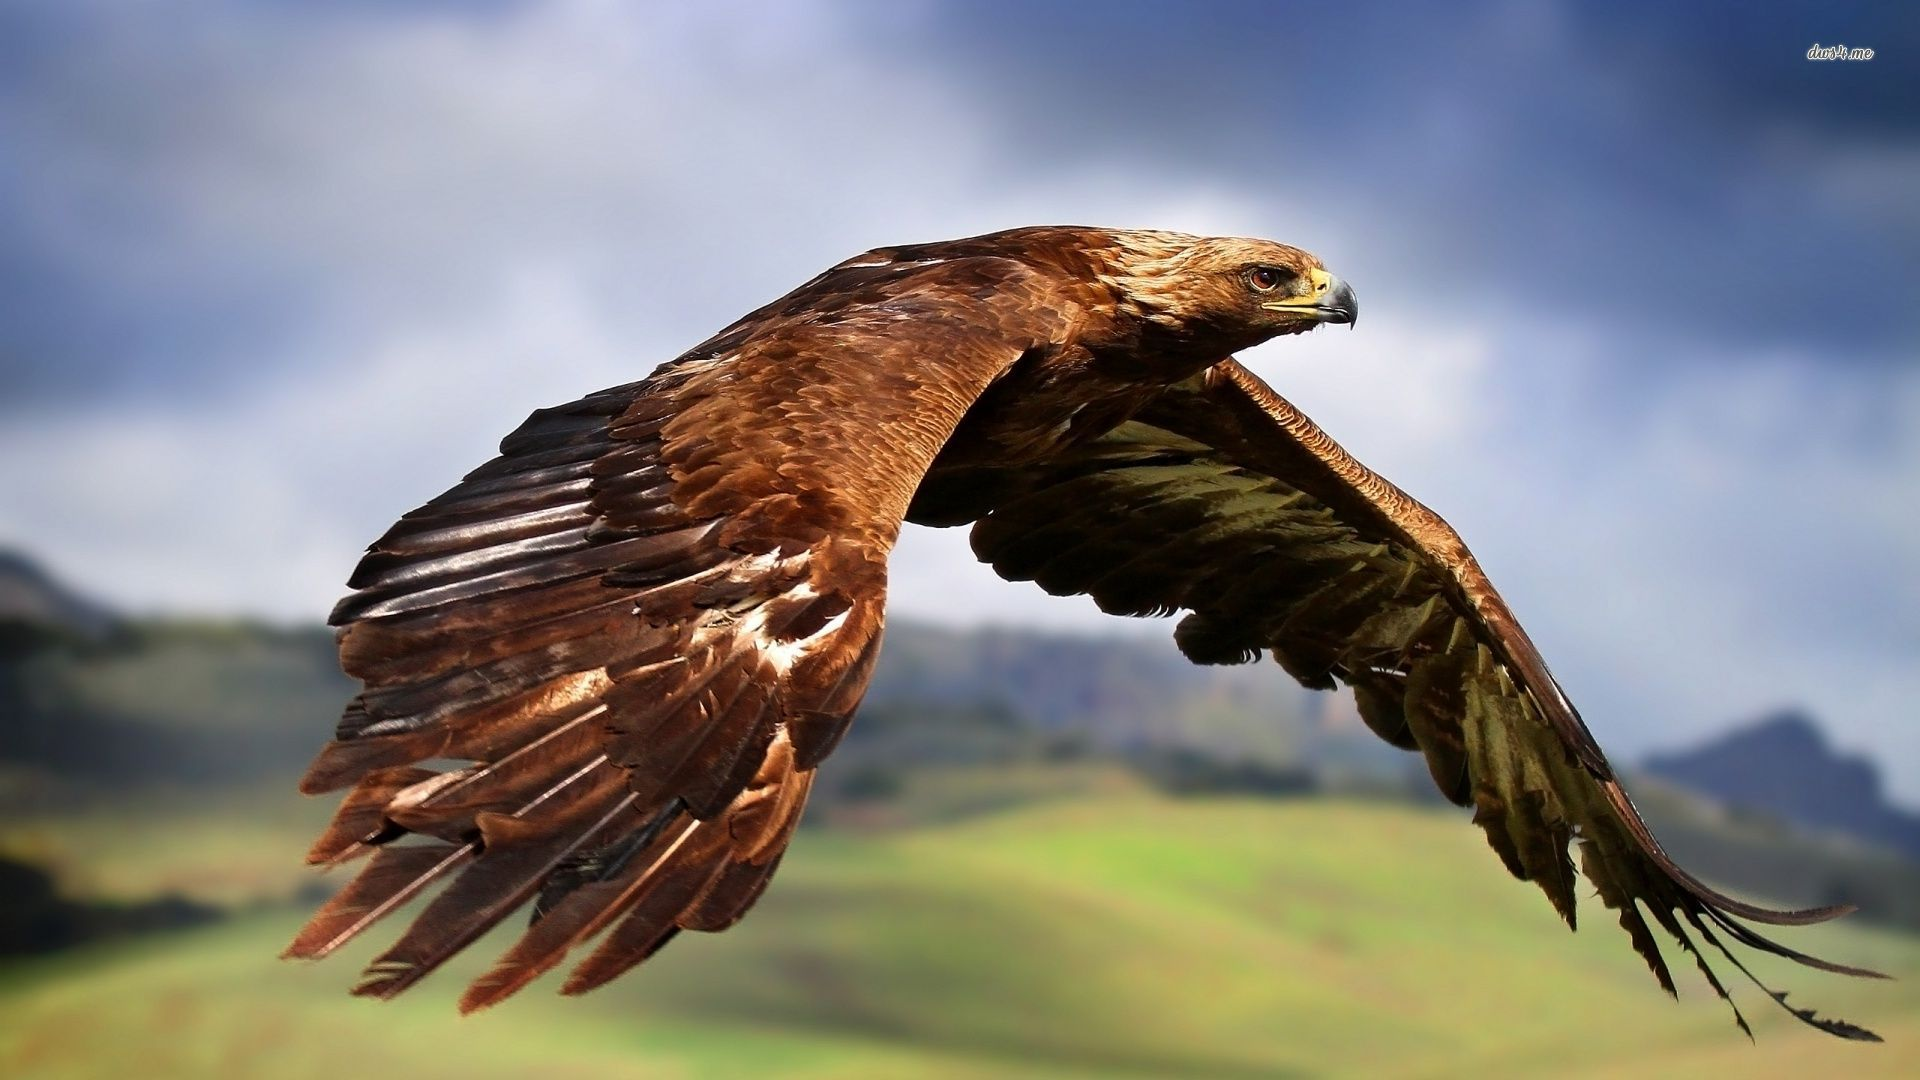 Golden Eagle Wallpapers Animal Hq Golden Eagle Pictures 4k Wallpapers 2019